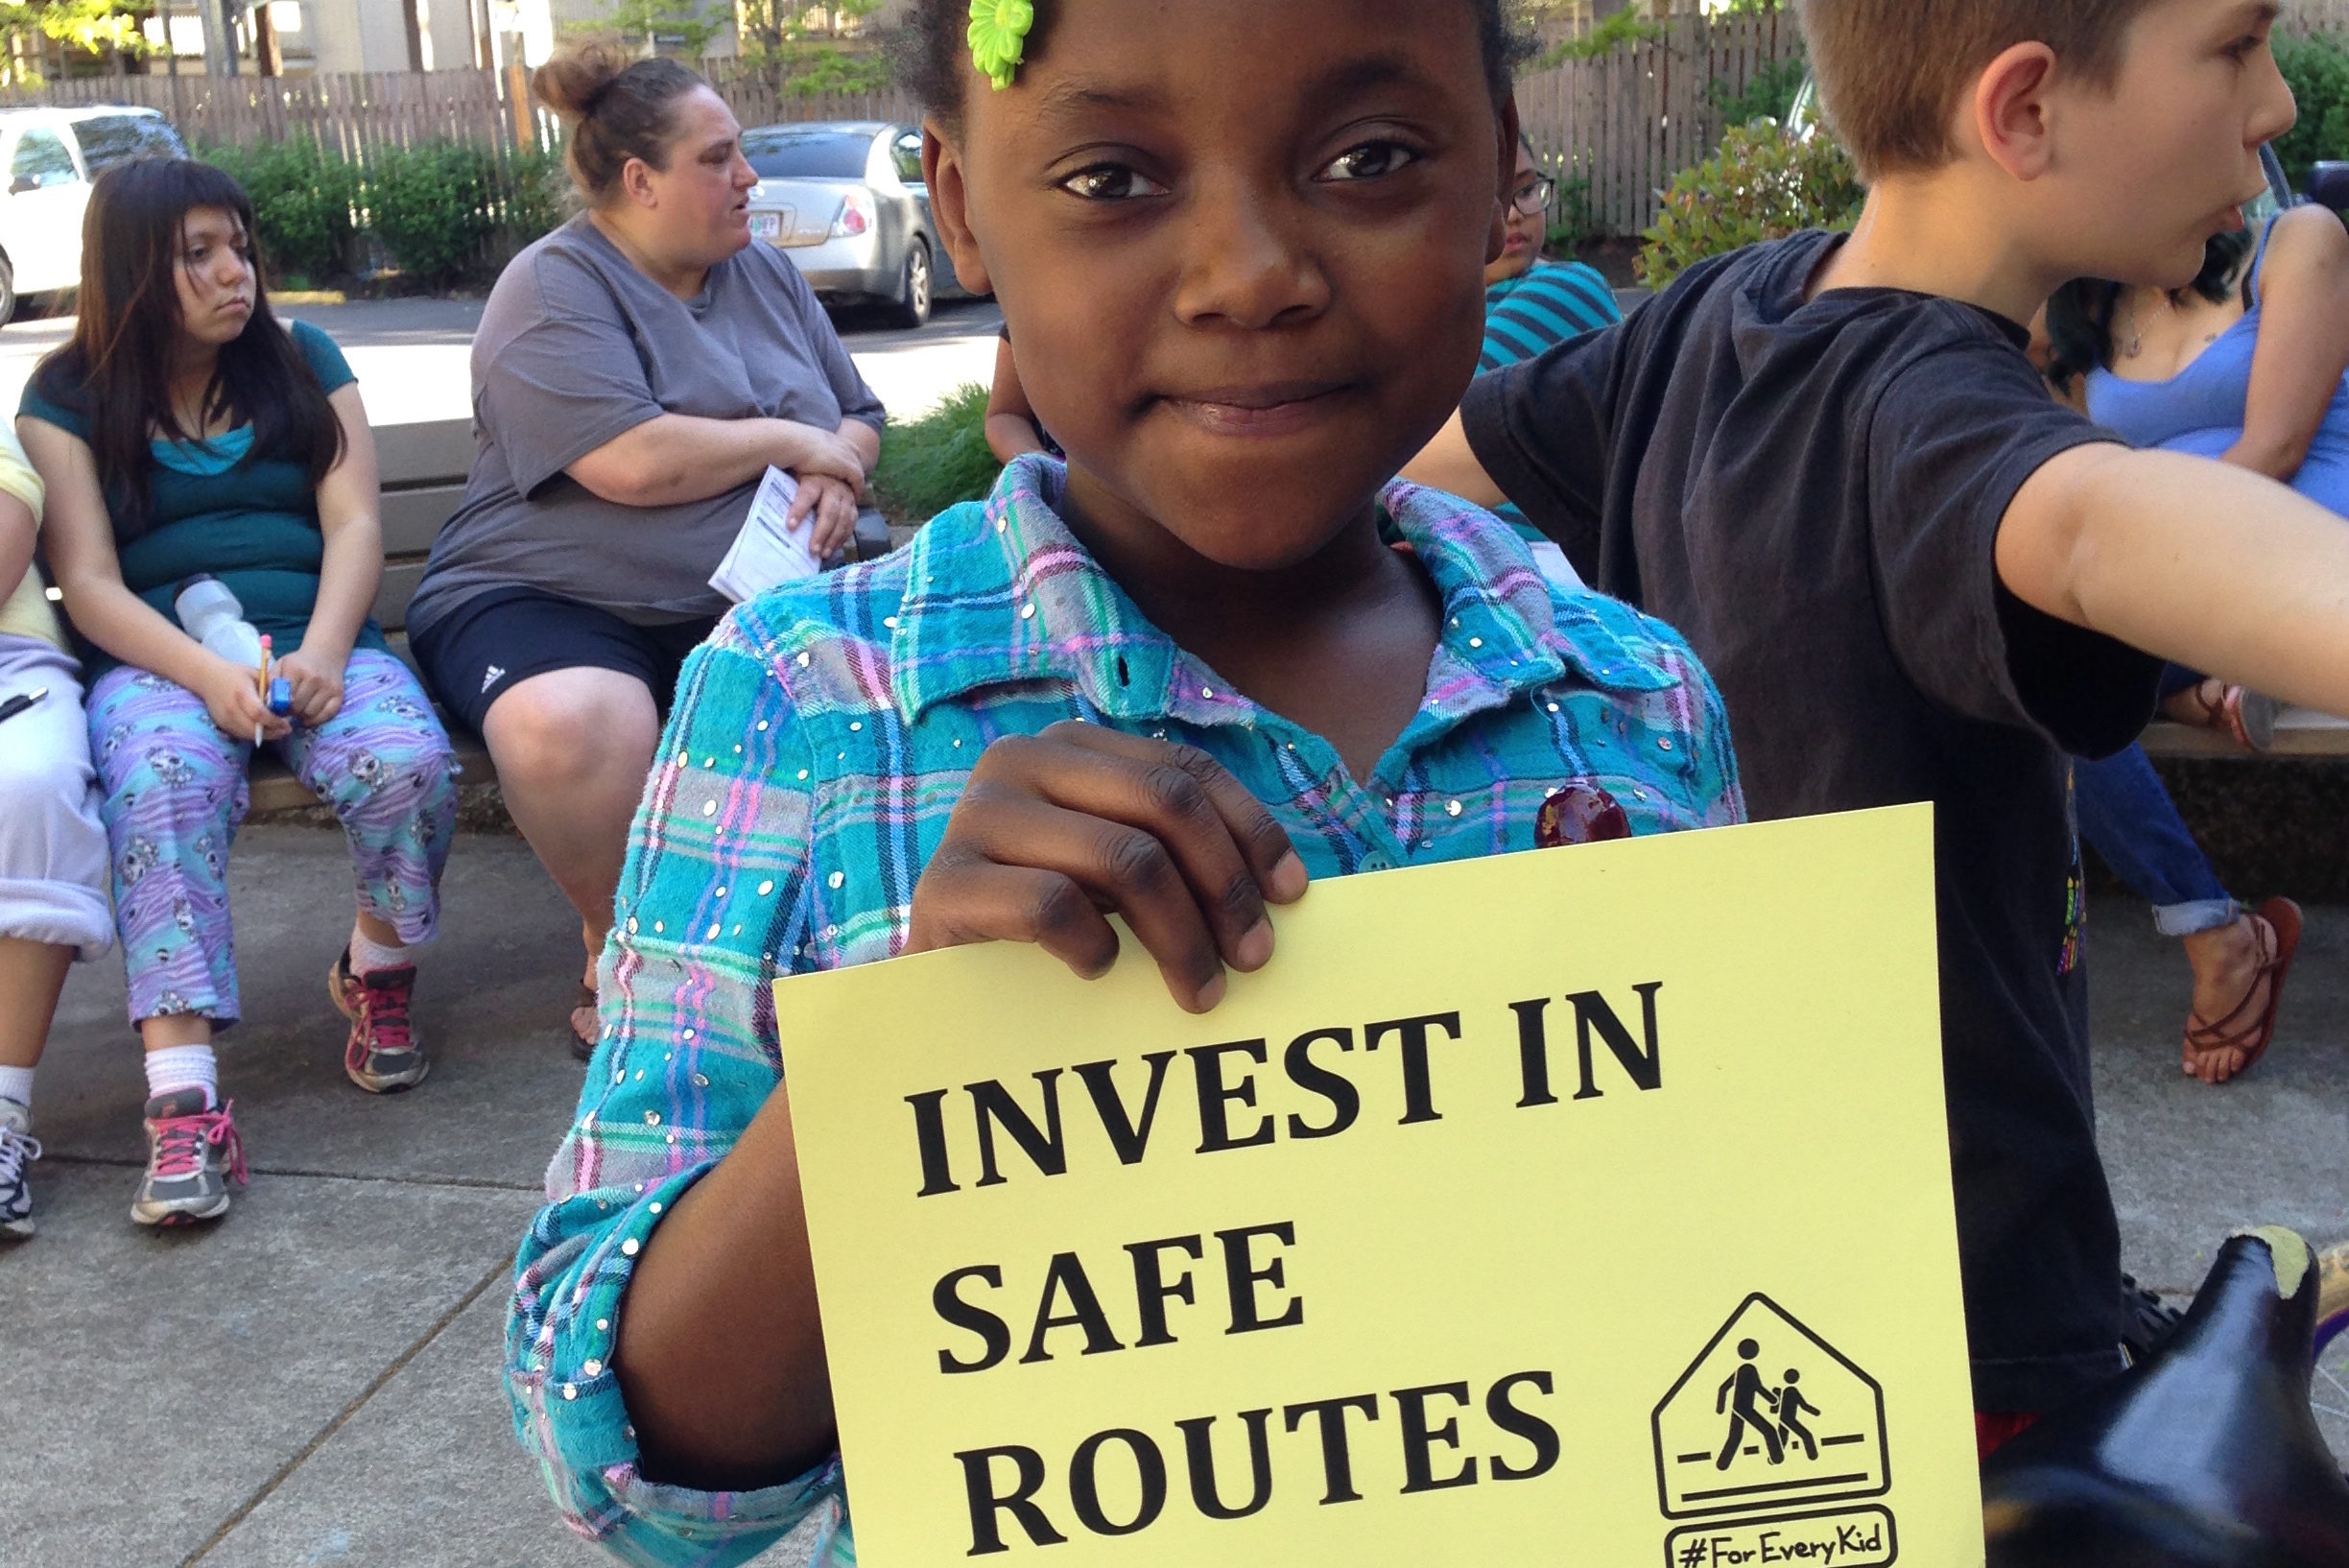 """A young girl with braids in her hair holds a sign that says """"INVEST IN SAFE ROUTES"""""""